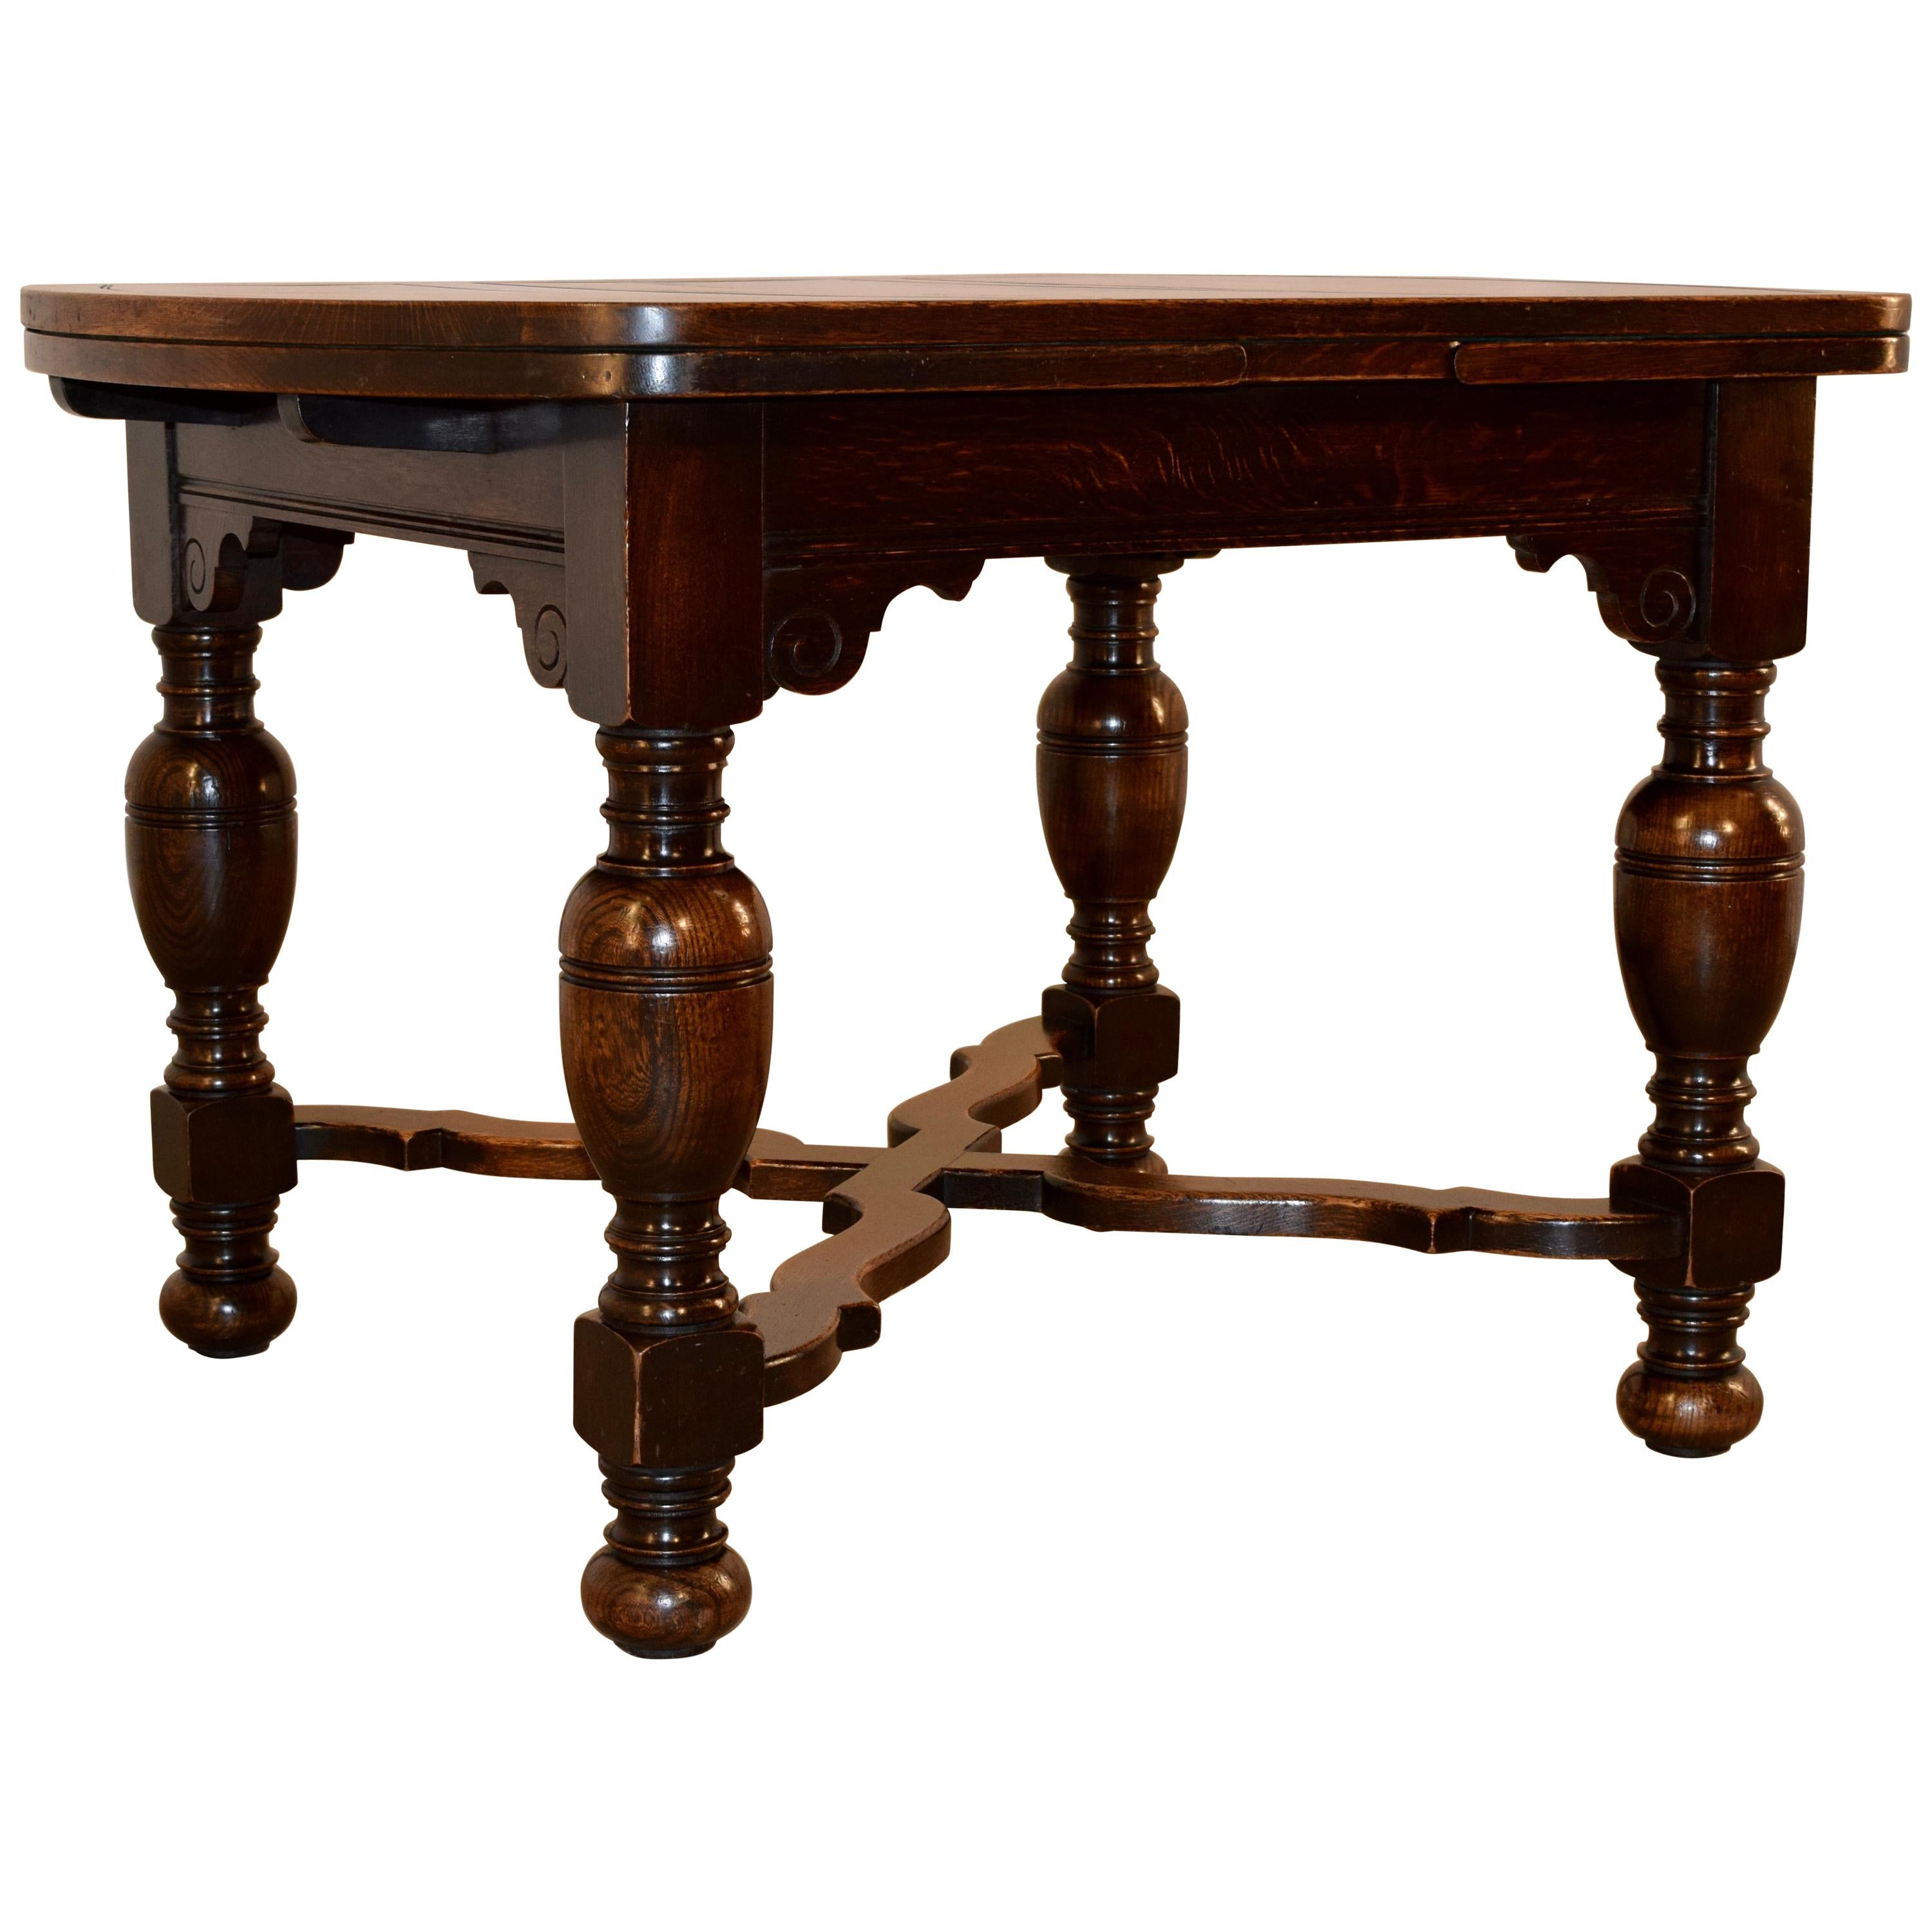 Late 19th Century English Draw Leaf Table